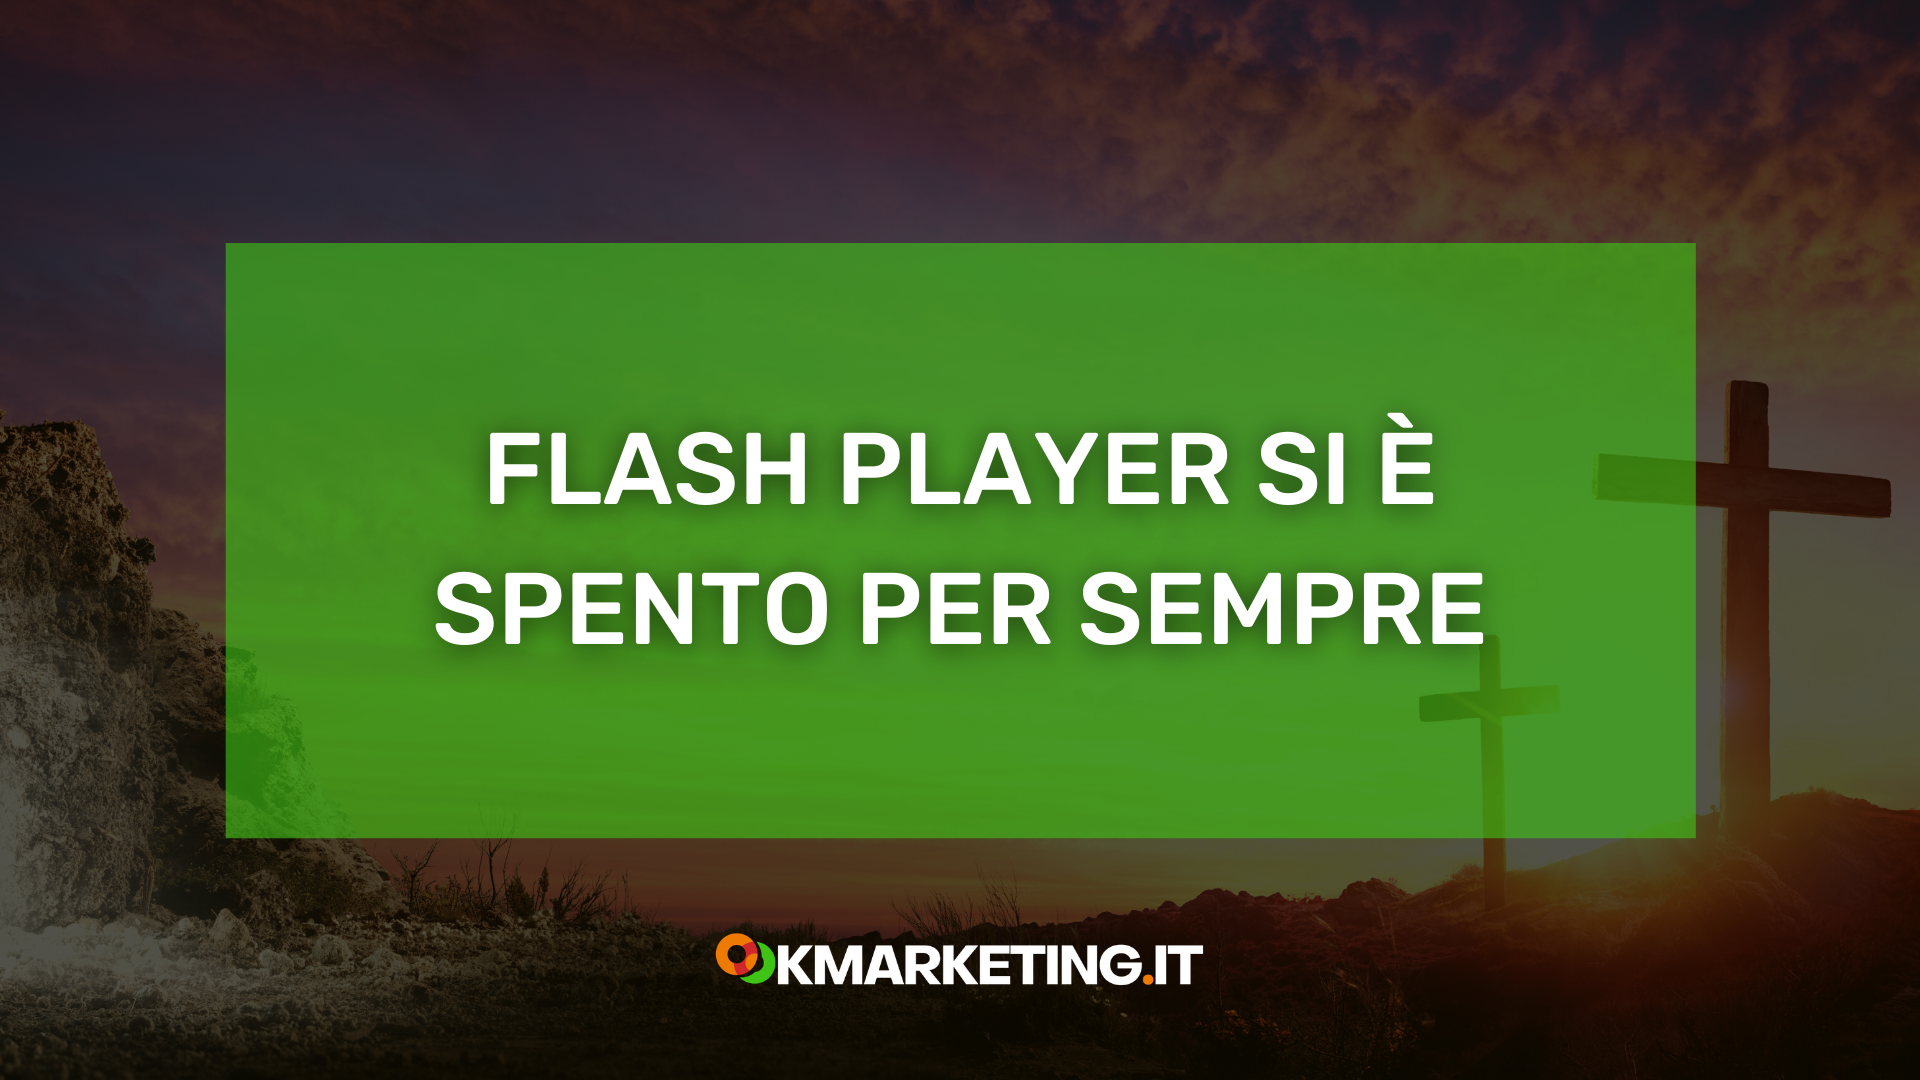 Flash Player si è spento per sempre, e con lui milioni di siti